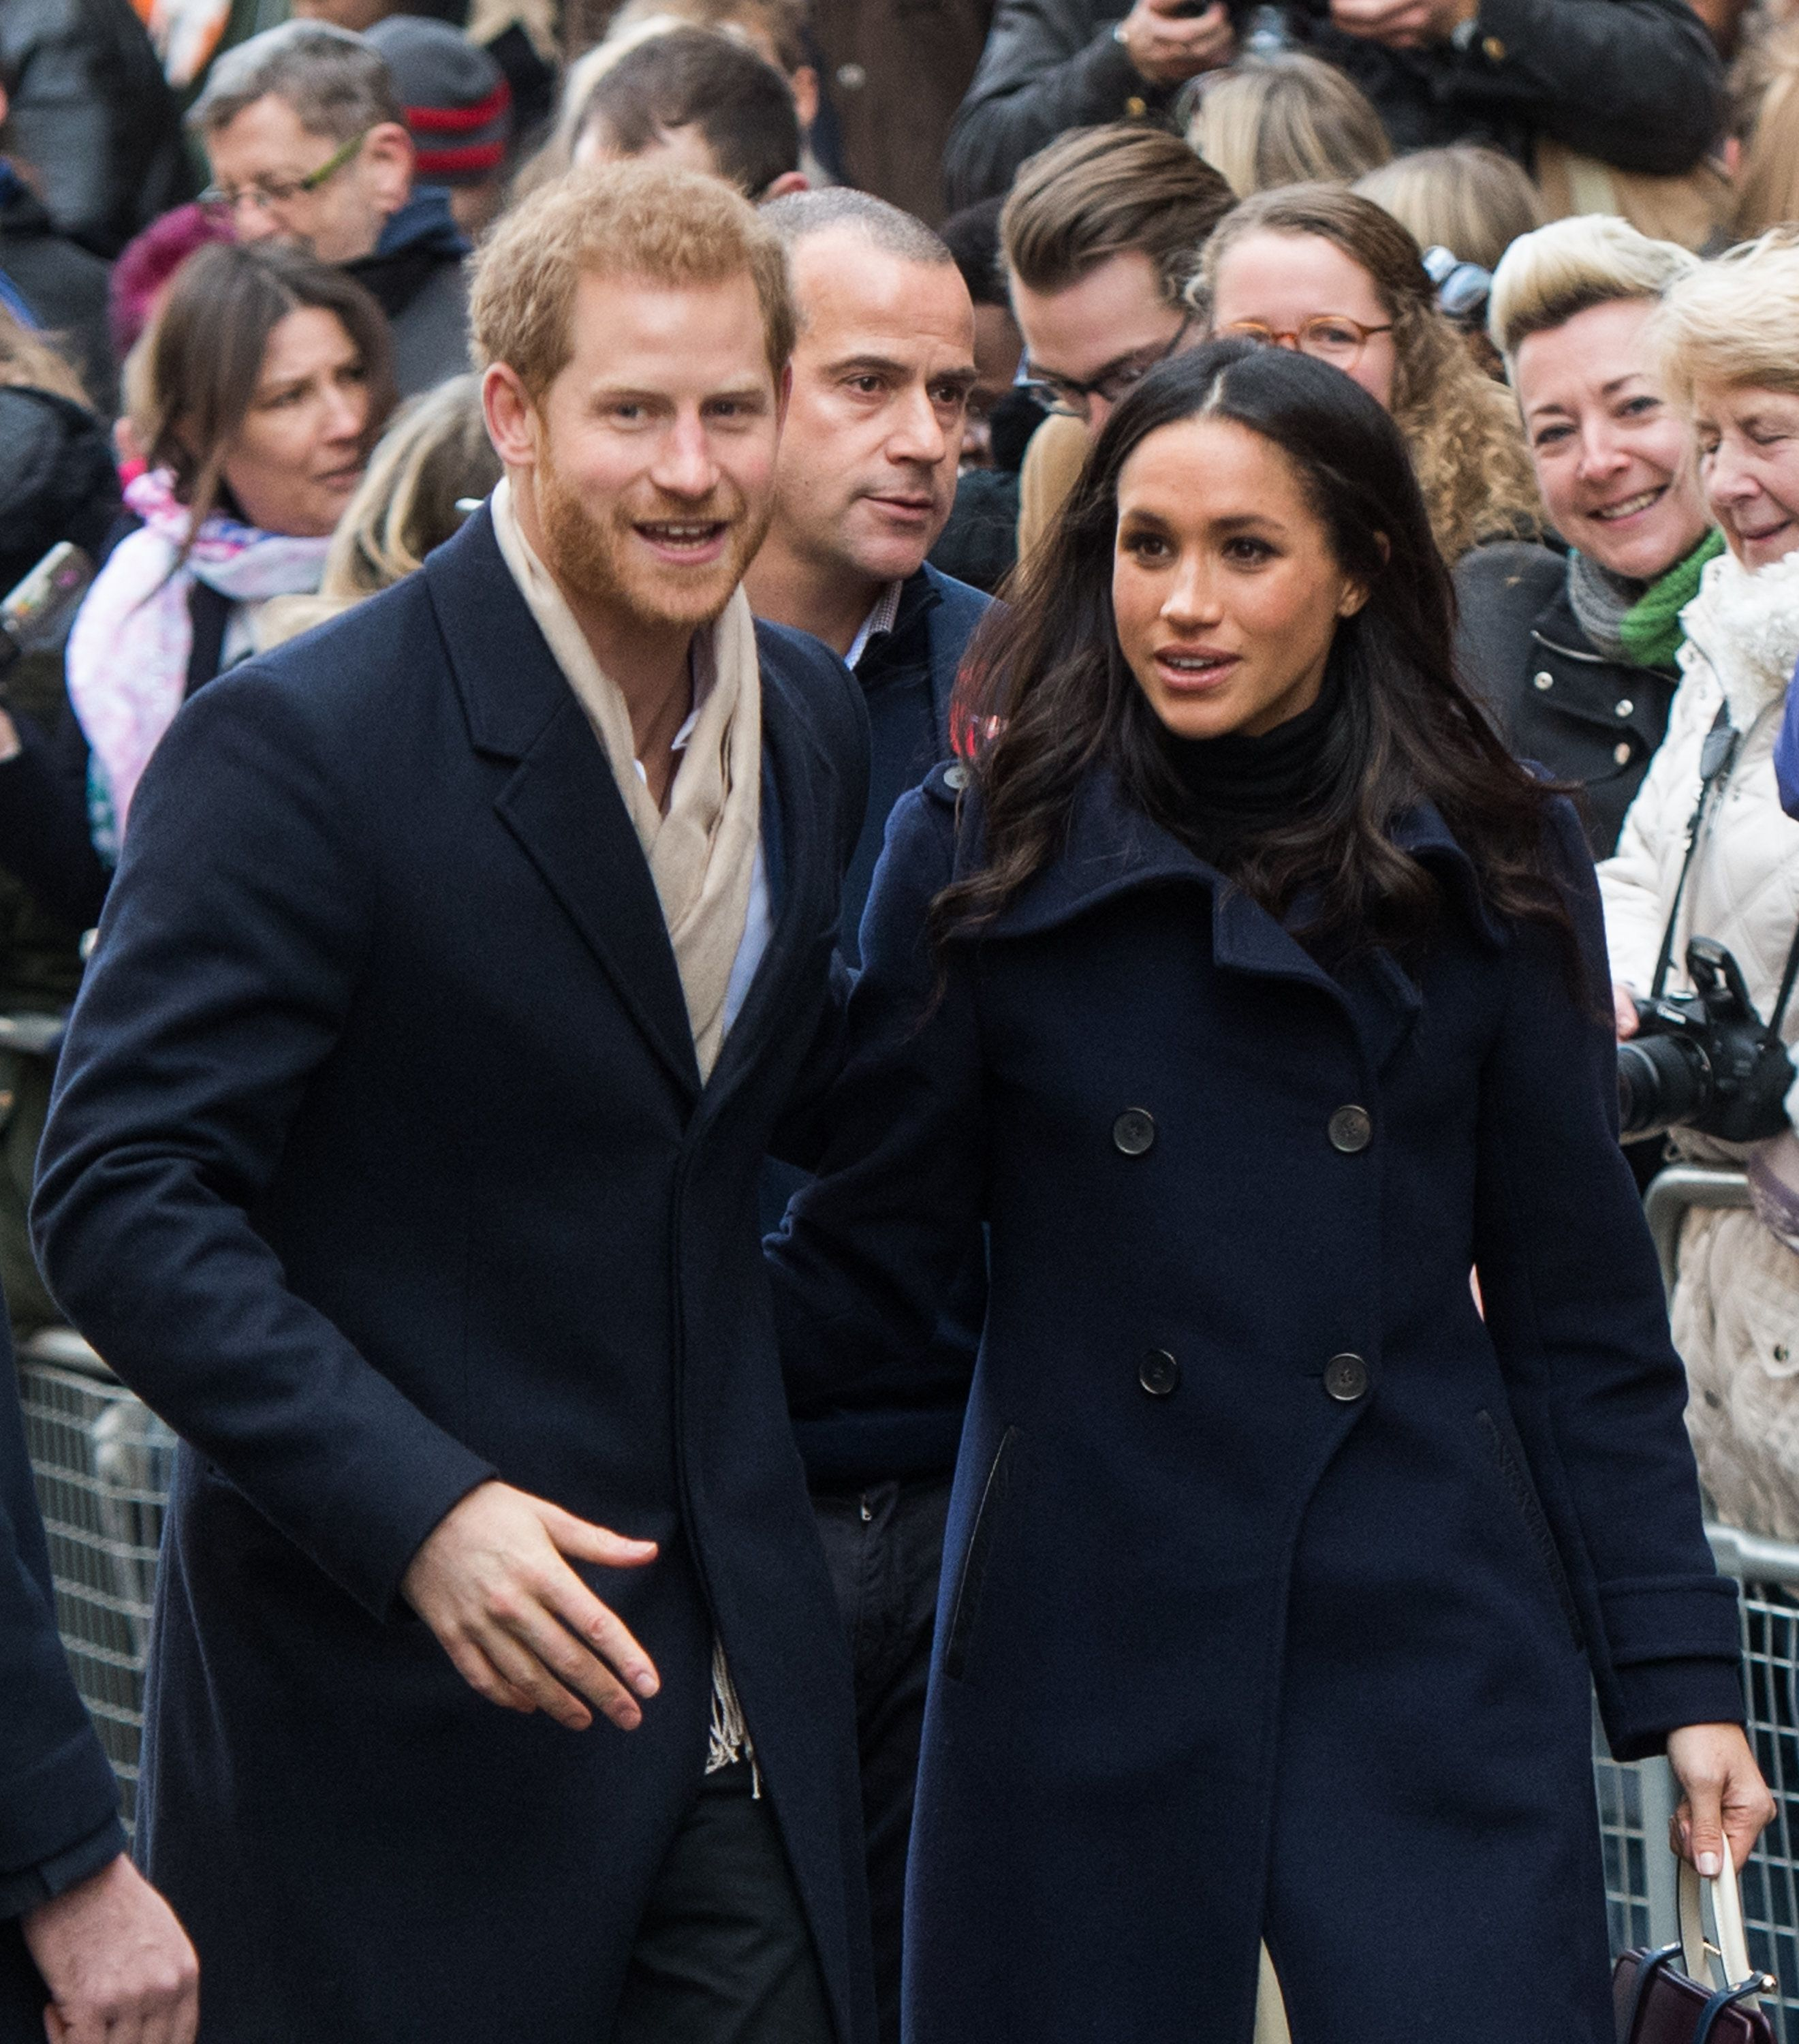 Prince Harry and Meghan Markle are set to tie the knot in Windsor on Saturday.